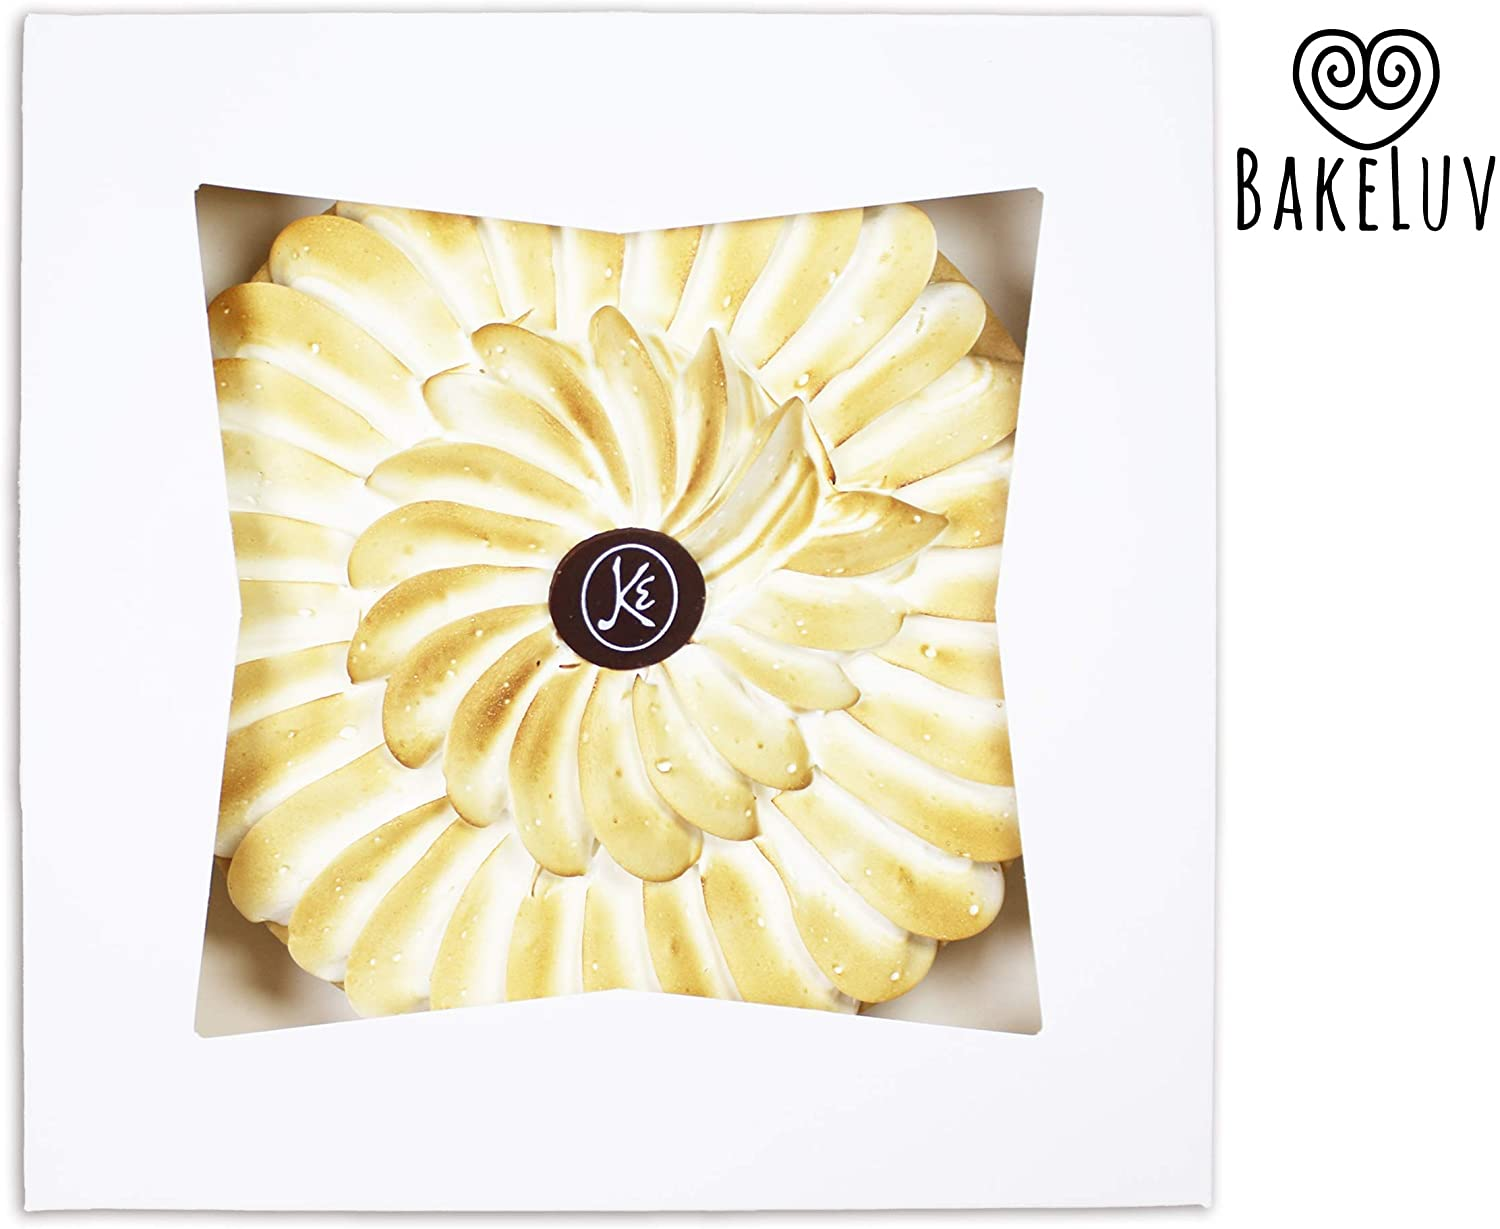 BakeLuv White Bakery Boxes with Window 9x9x2.5 inches | 50 Pack | Auto-Popup | Thick & Sturdy 350 GSM | Mini Pie Boxes with Window, Cake Boxes, Cookie Boxes, Dessert, Take Out Boxes, Pastry Boxes